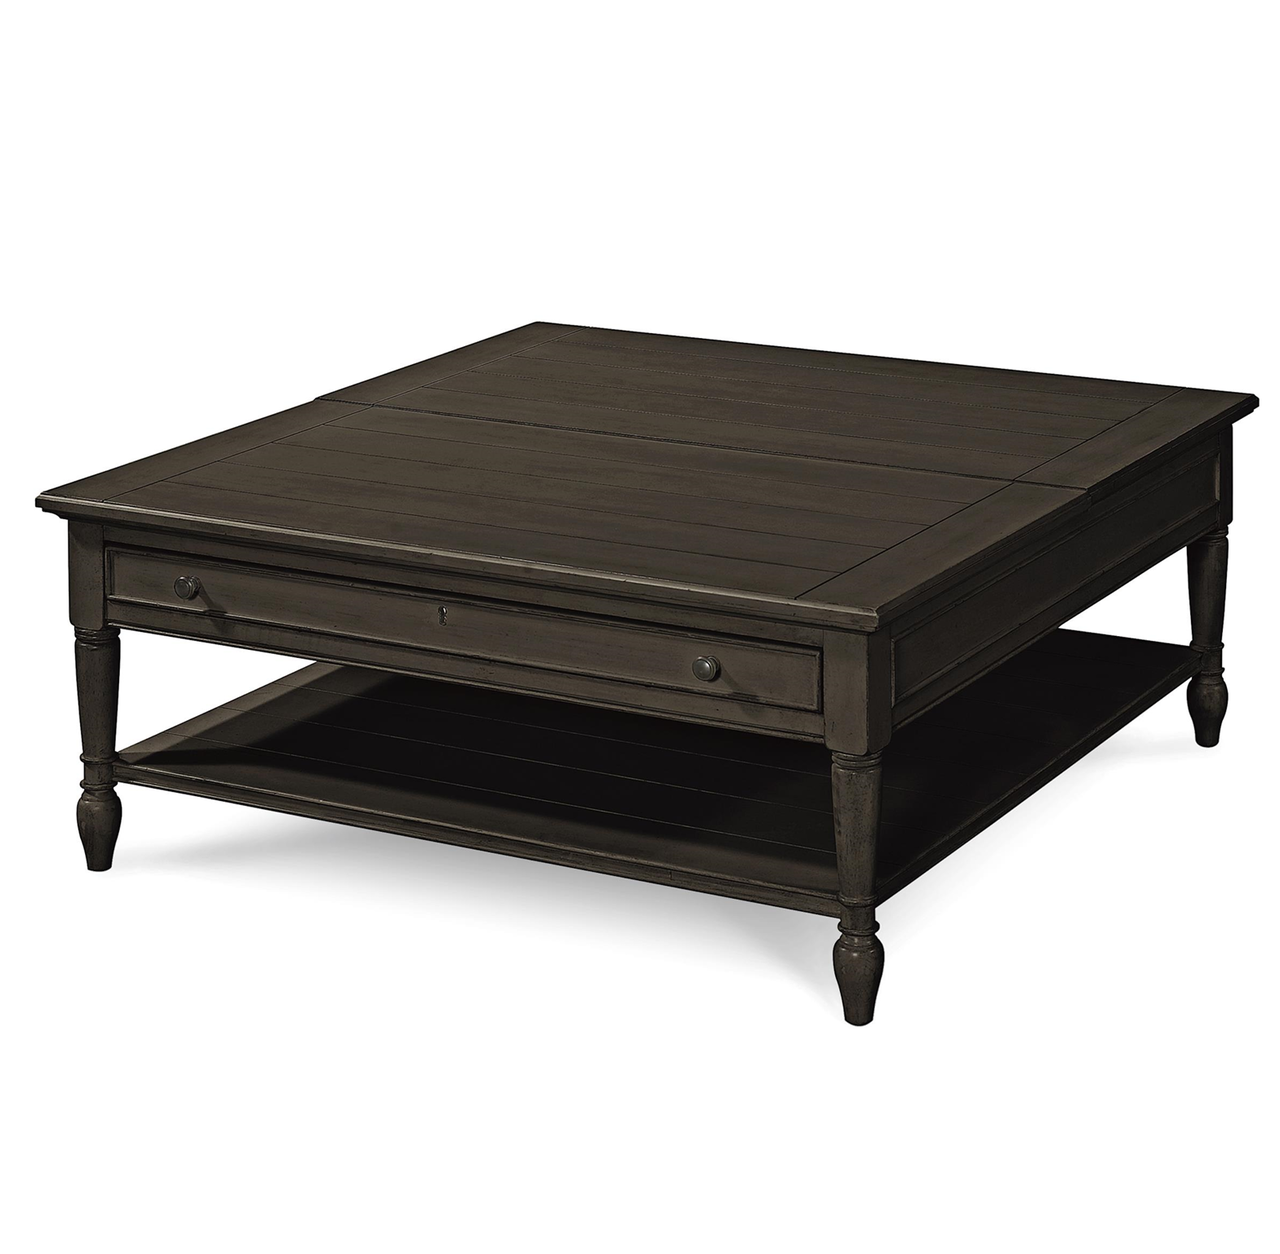 Country Chic Black Wood Square Coffee Table With Lift Top Coffee Table Square Lift Top Coffee Table Coffee Table Joss And Main [ 1254 x 1280 Pixel ]